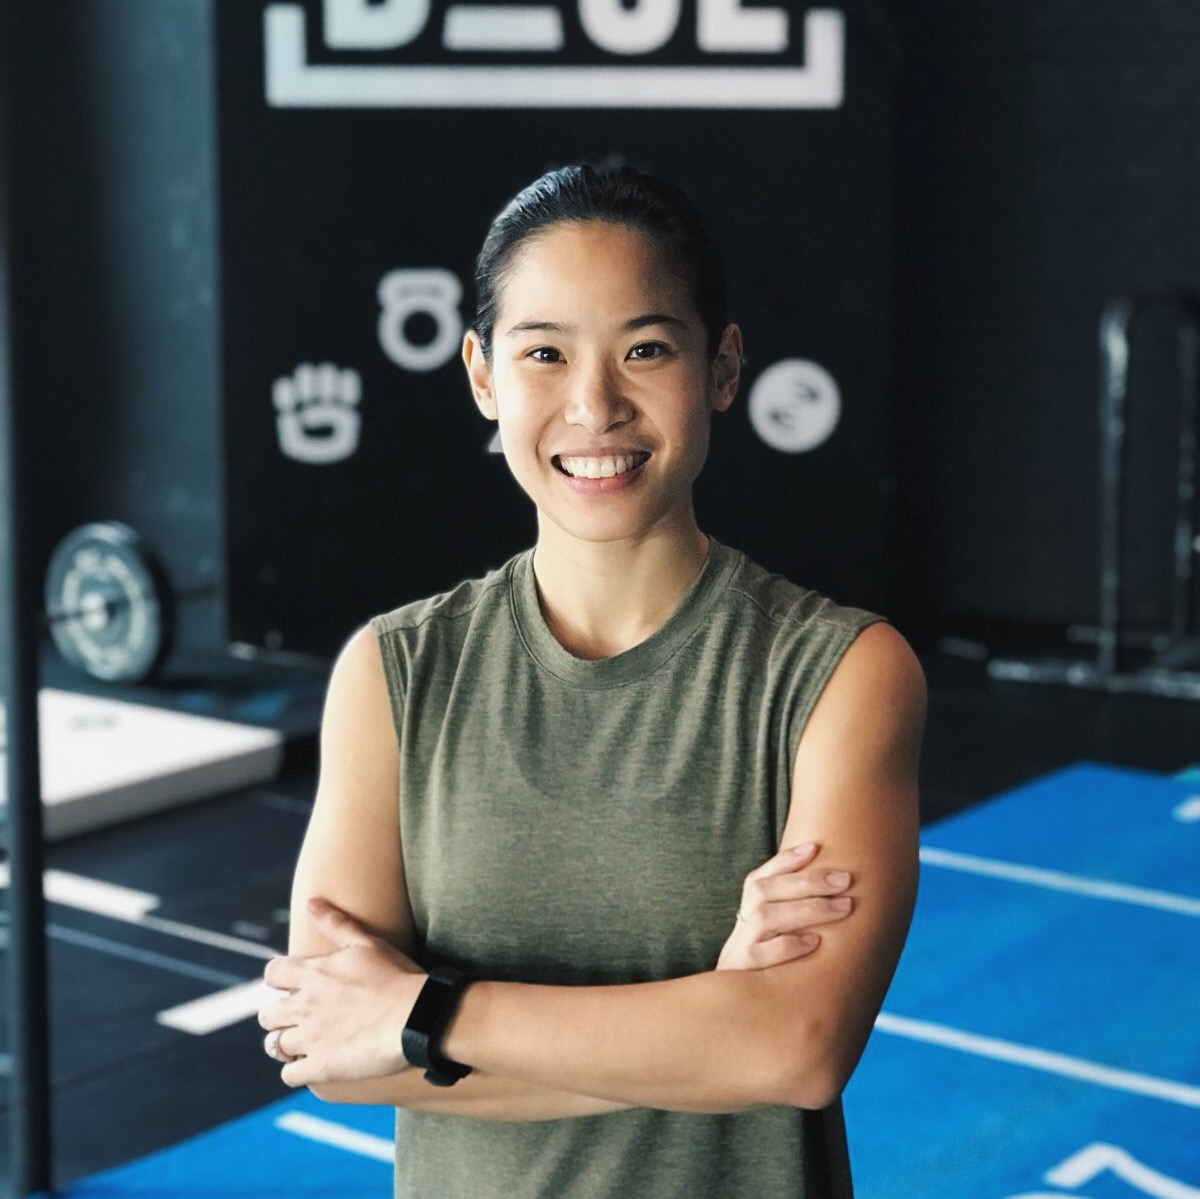 BASE Lowdown: Personal Training coach Gale